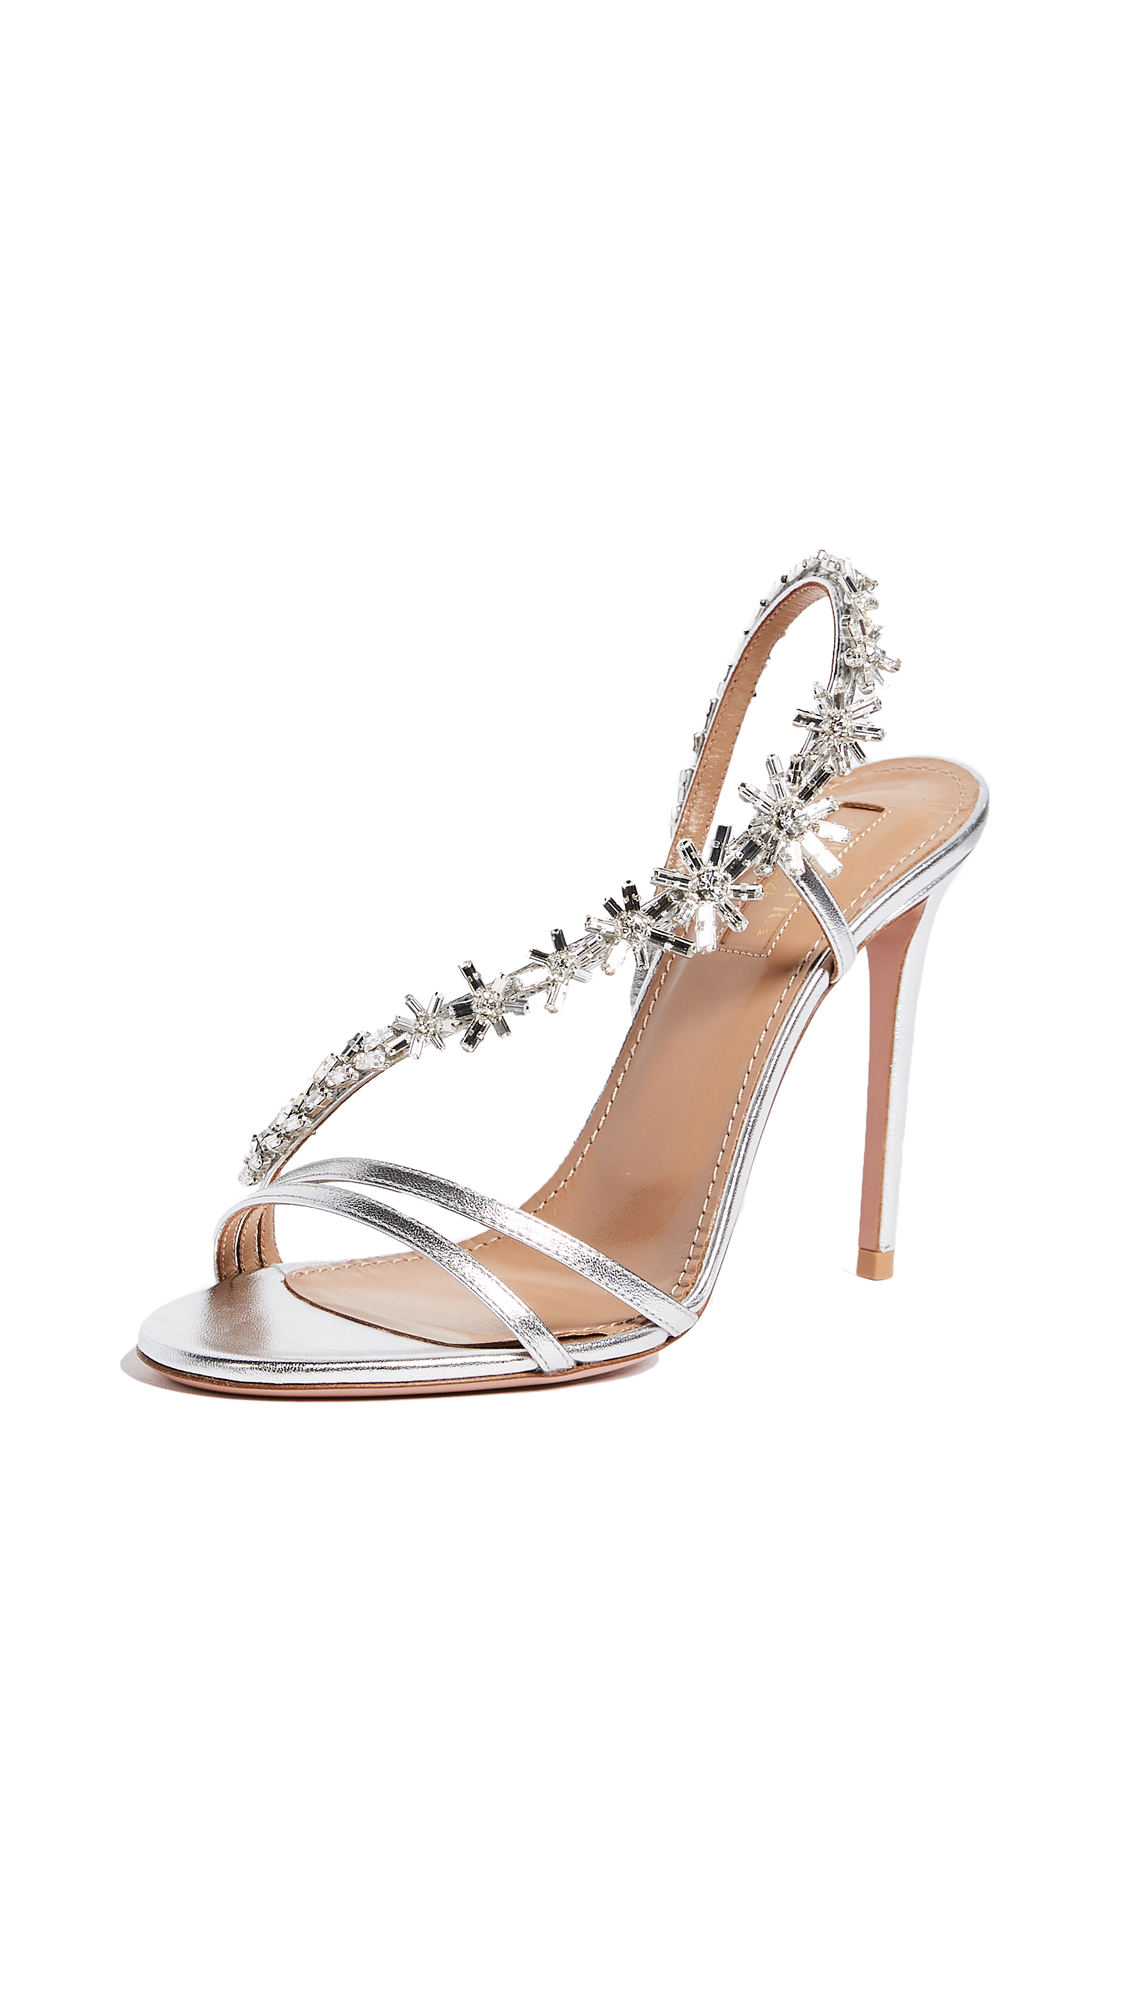 Aquazzura Chateau 105 Sandals - Silver